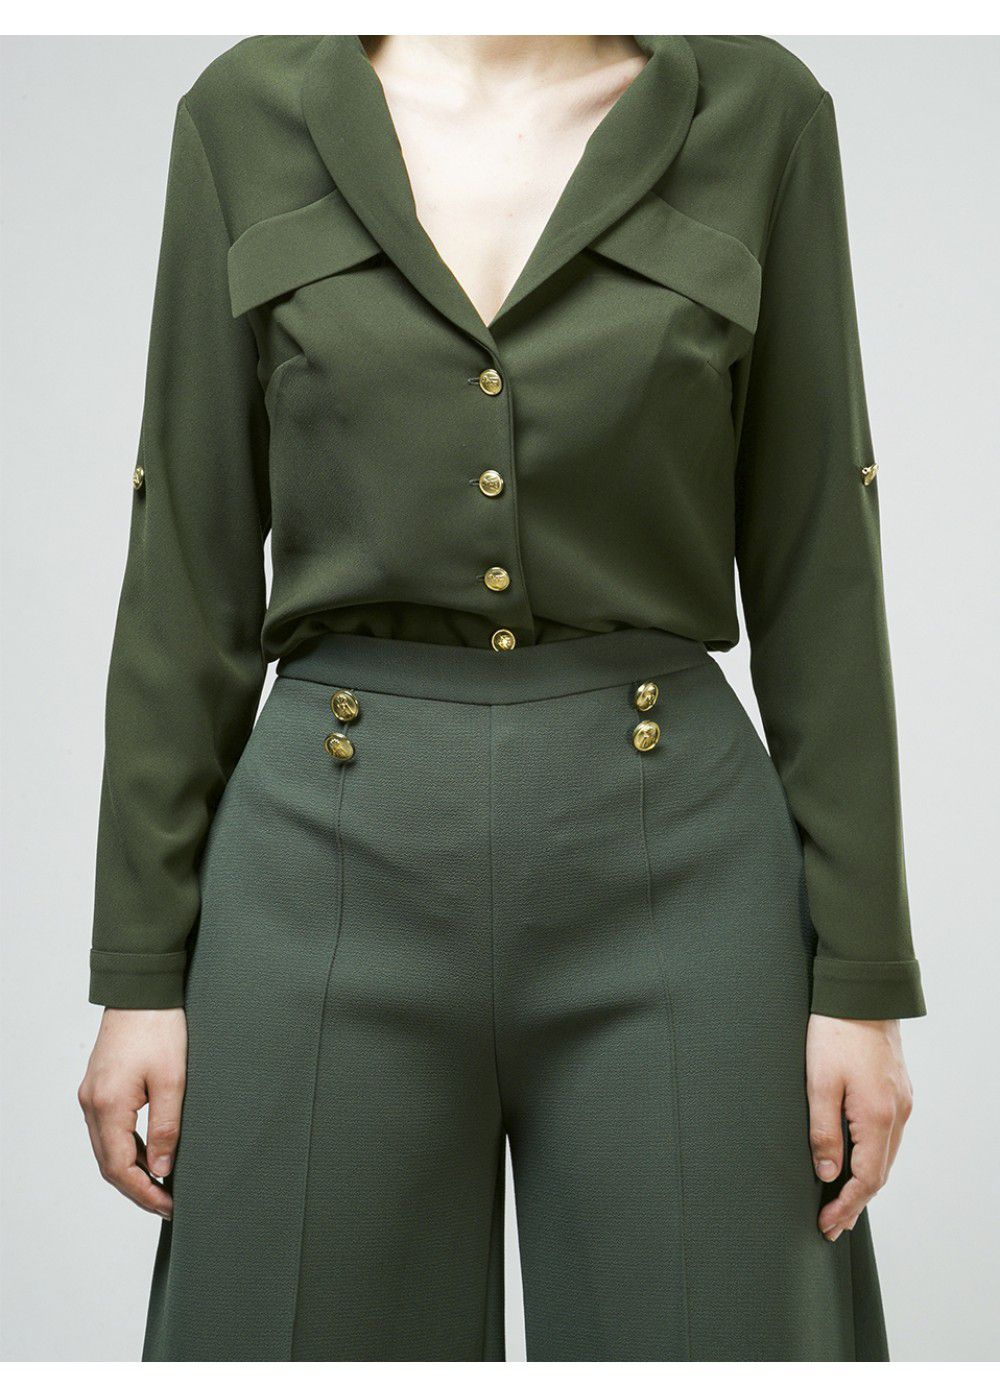 Maleone Pants with Buttons in Khaki